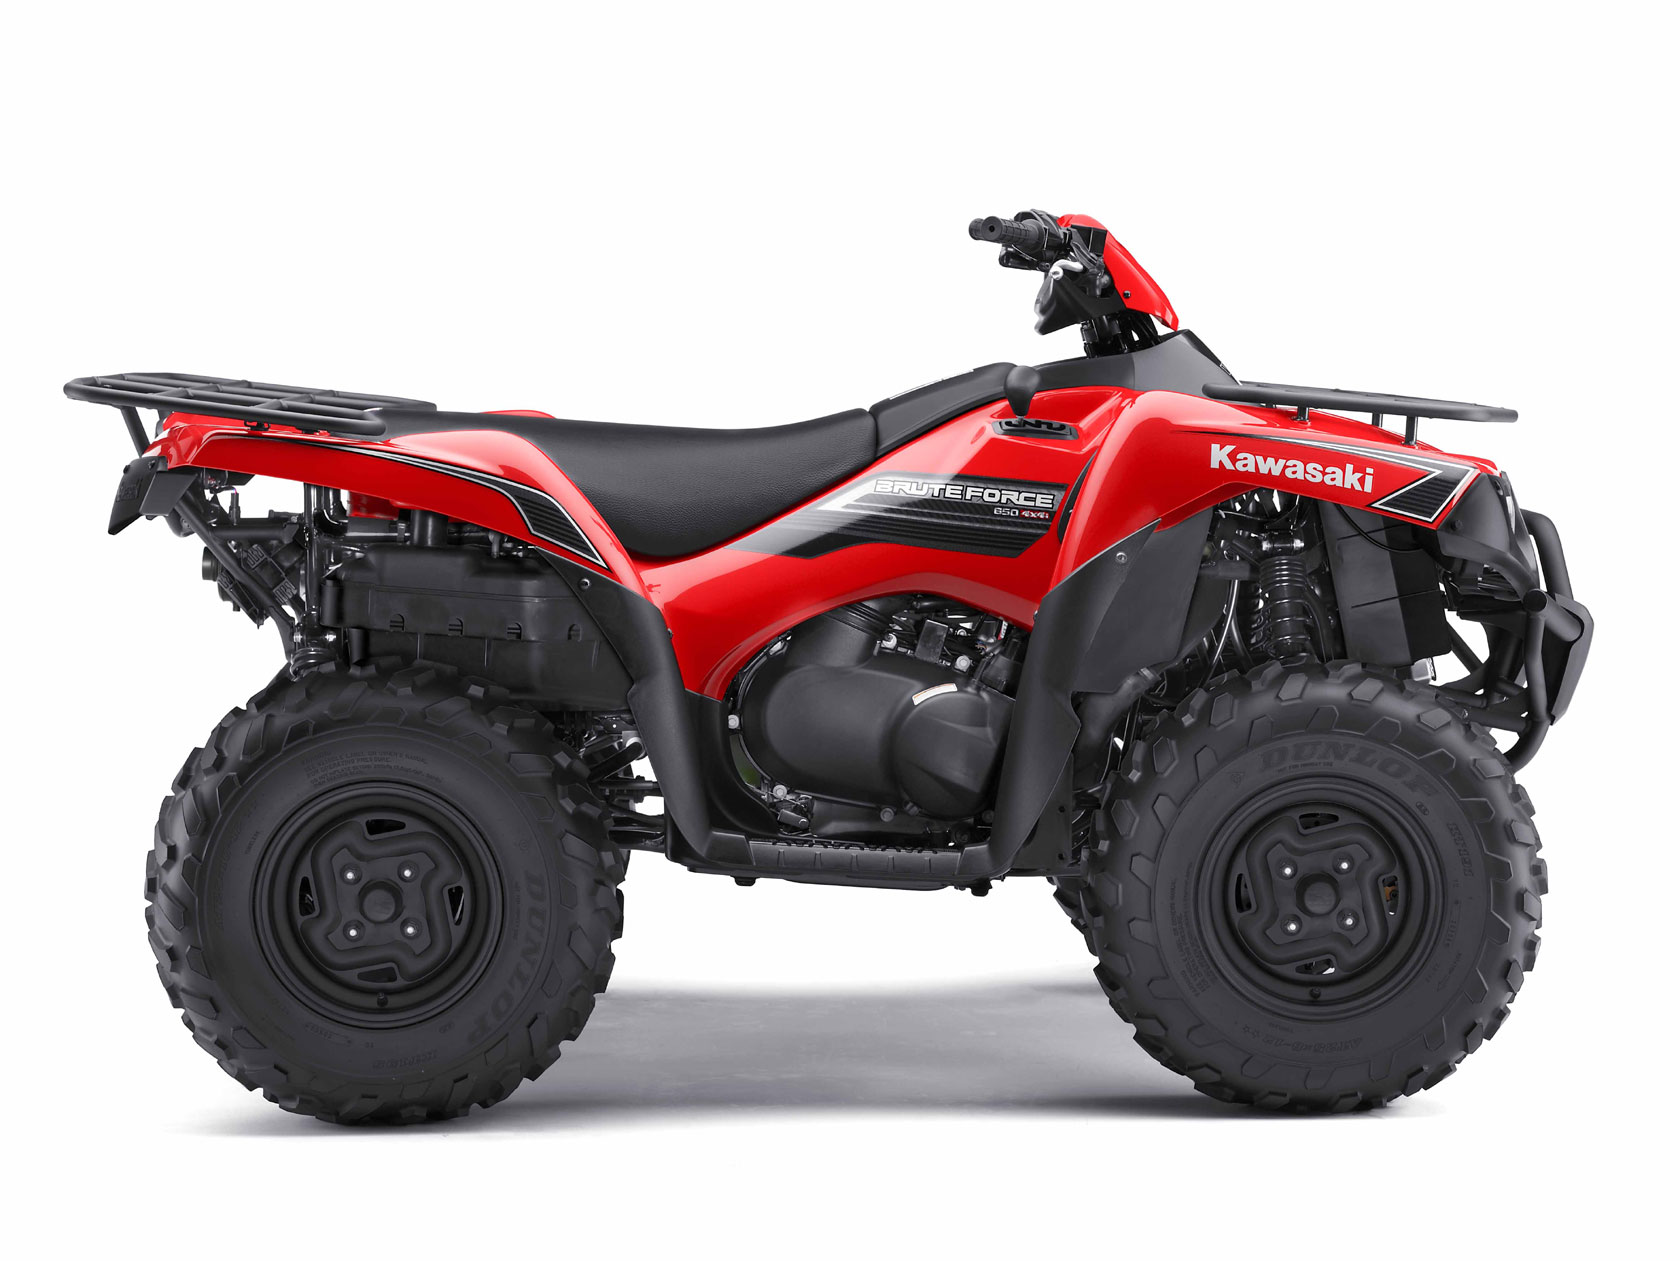 Kawasaki Atv Brute Force